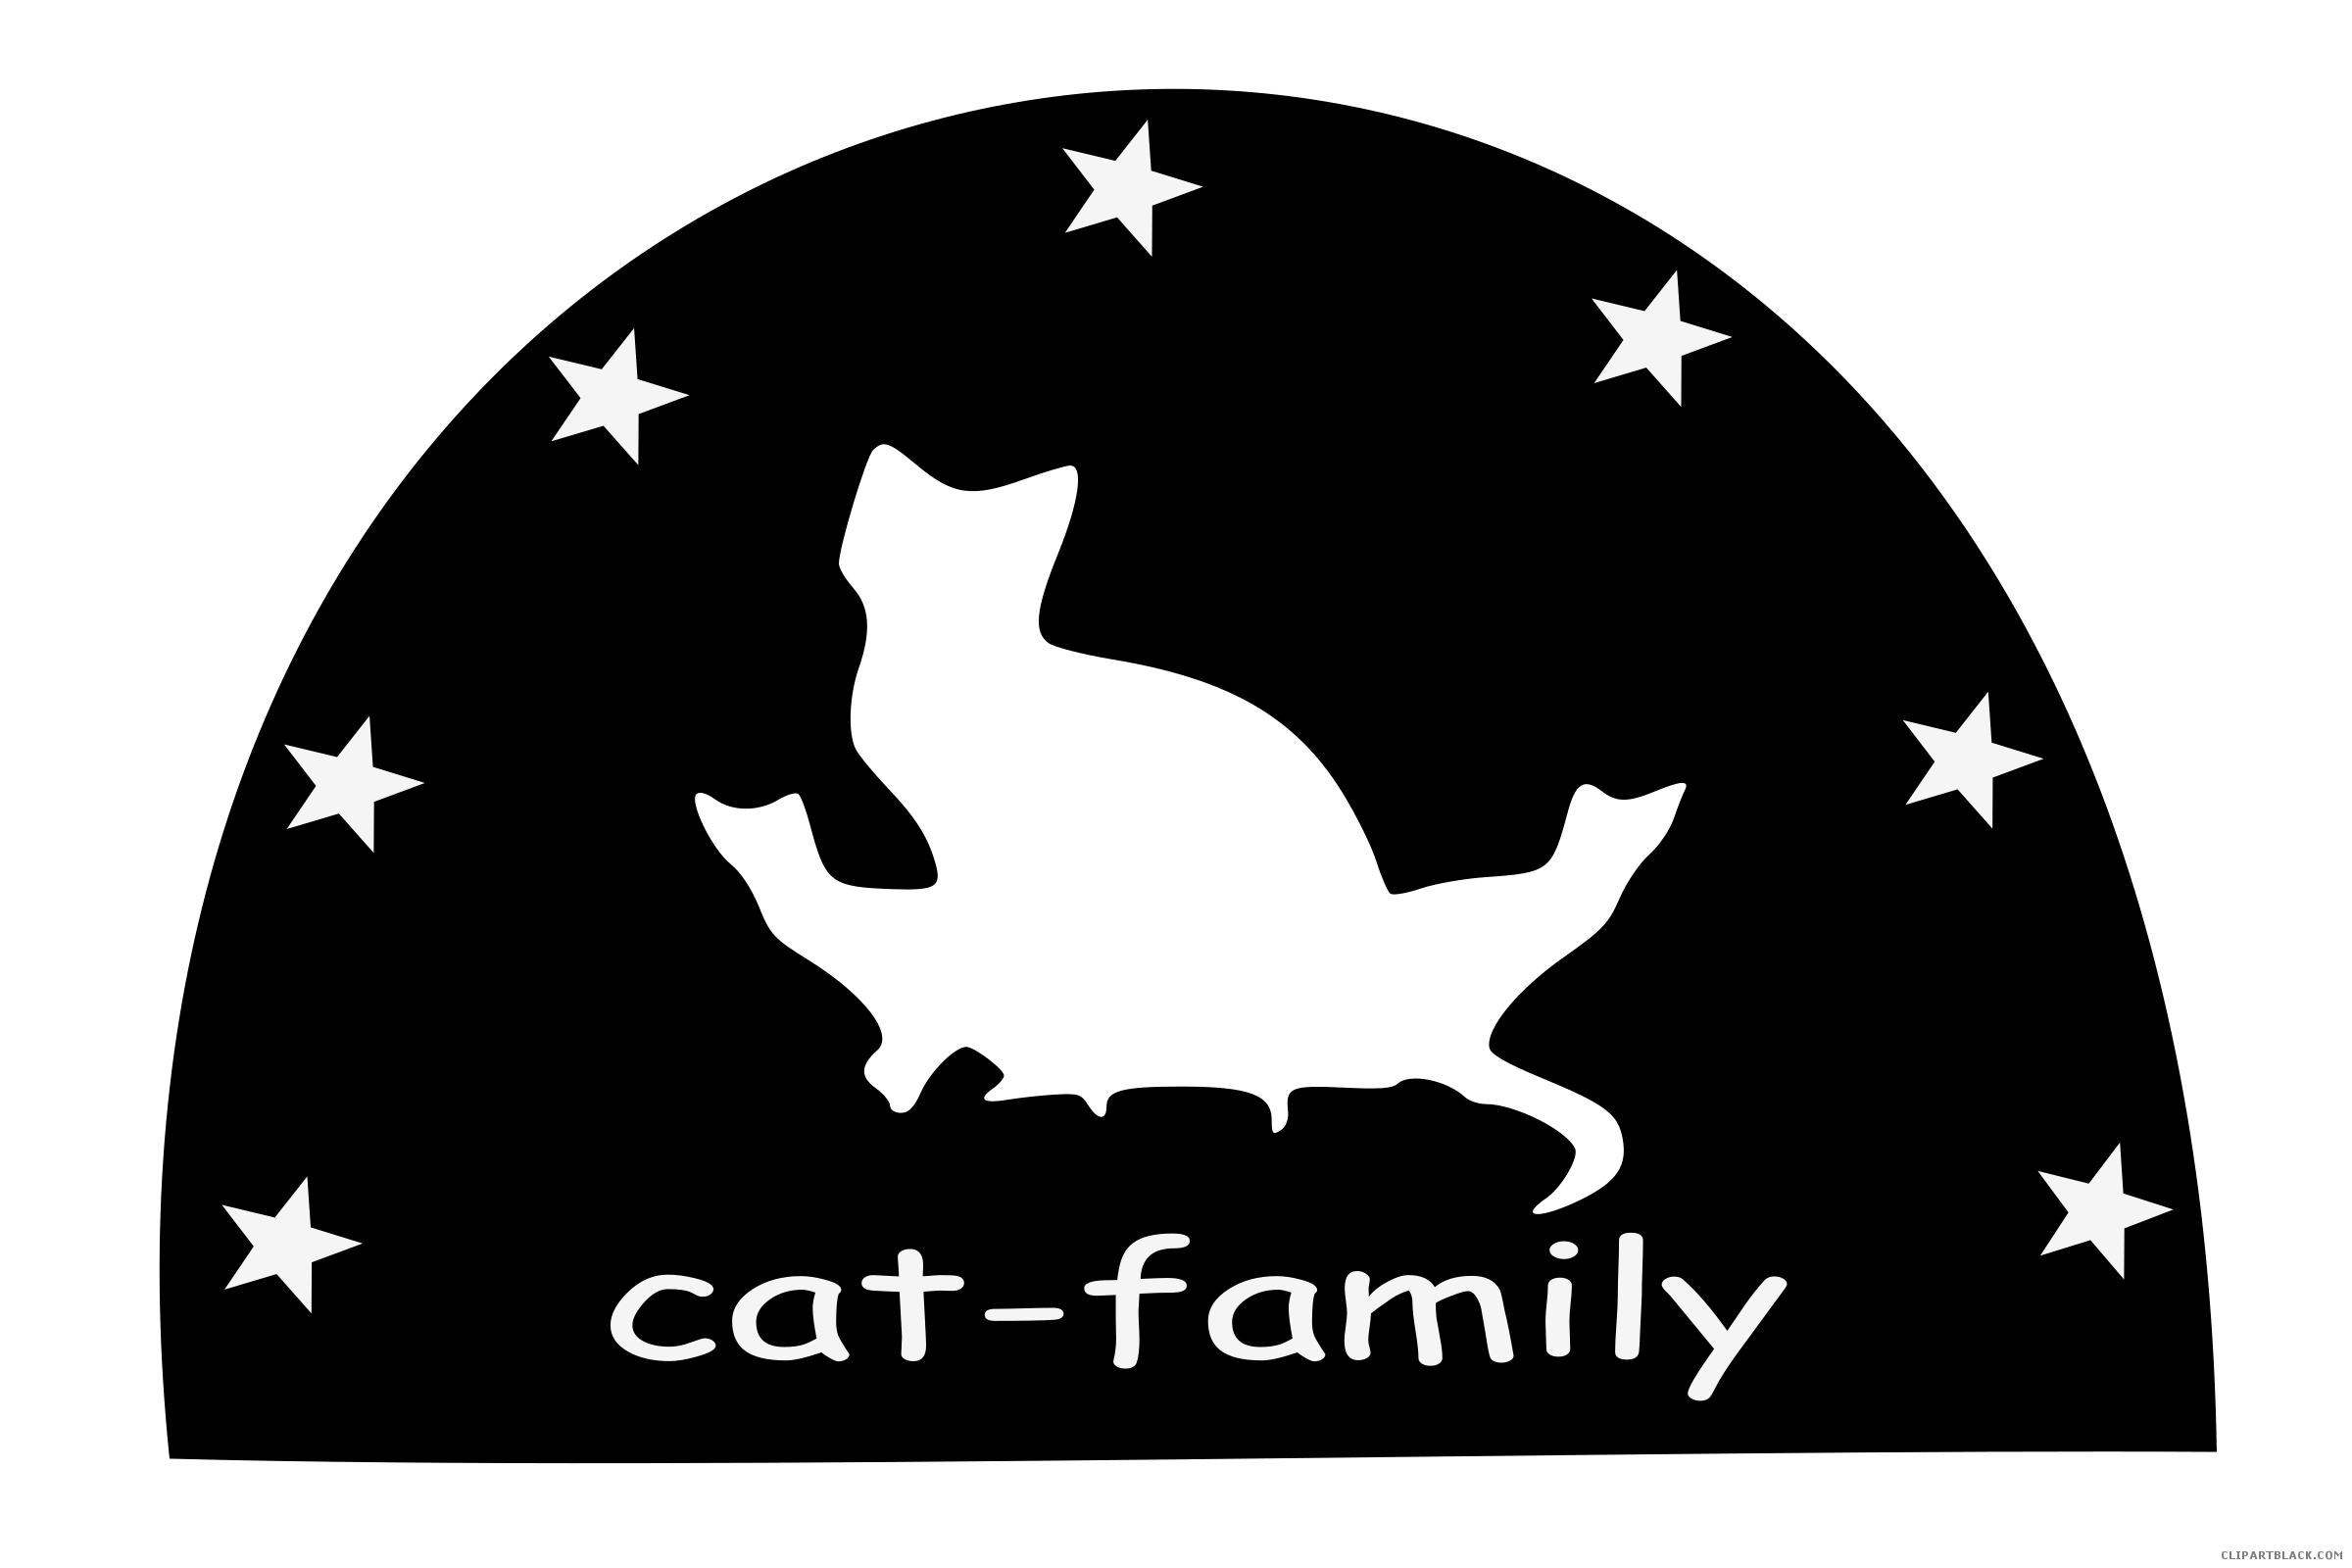 Cat silhouette clipart black and white svg black and white Cat Silhouette Clipart - Page 4 of 4 - ClipartBlack.com svg black and white